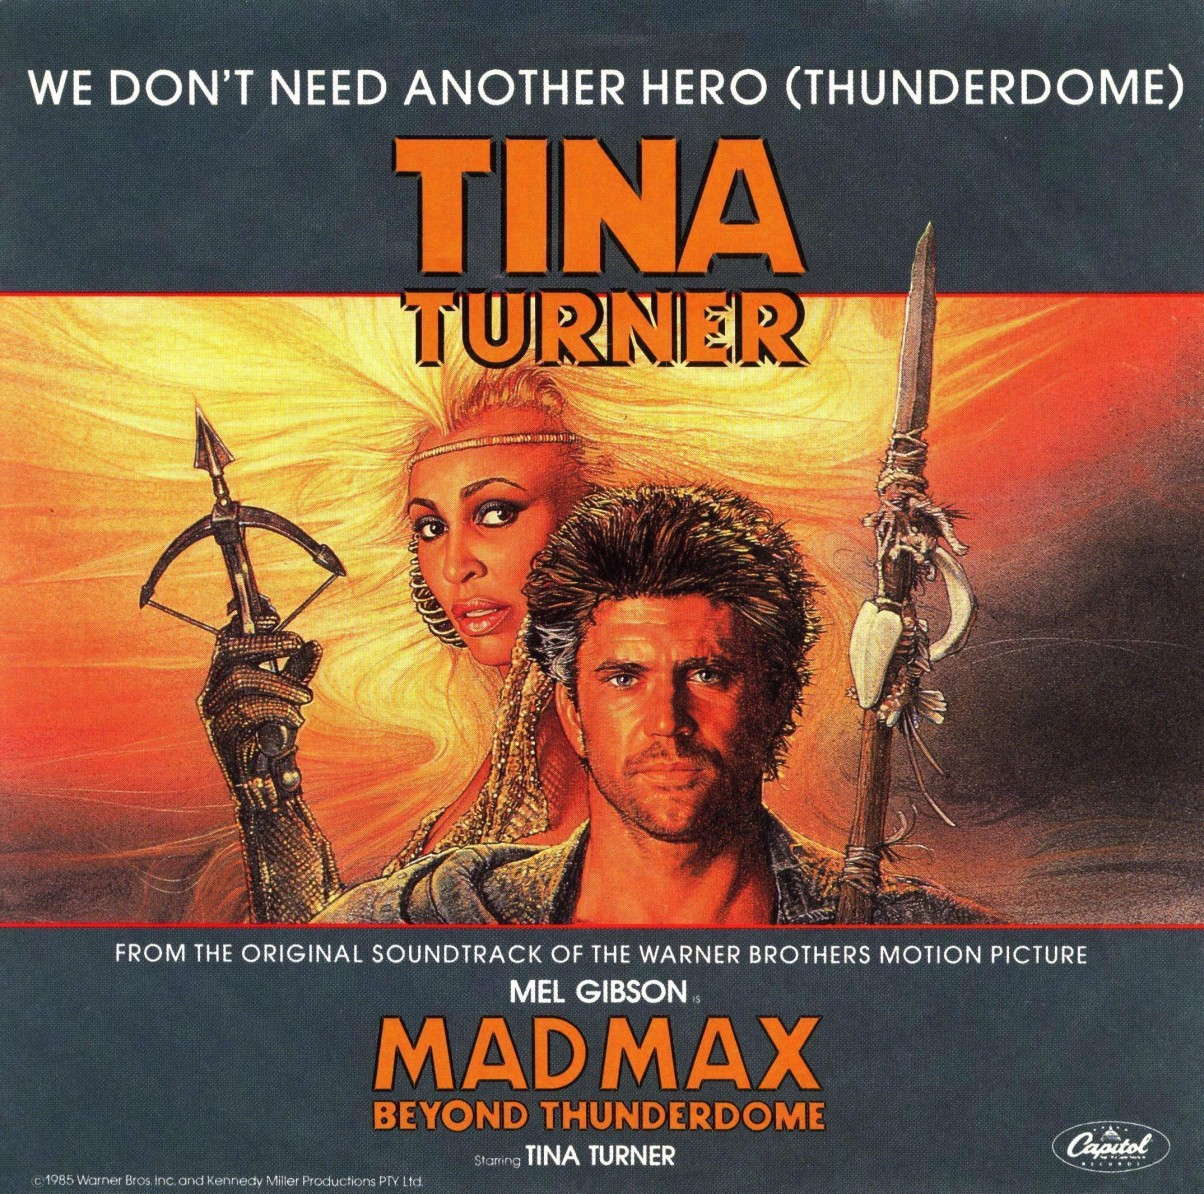 tina turner we don't need another hero_